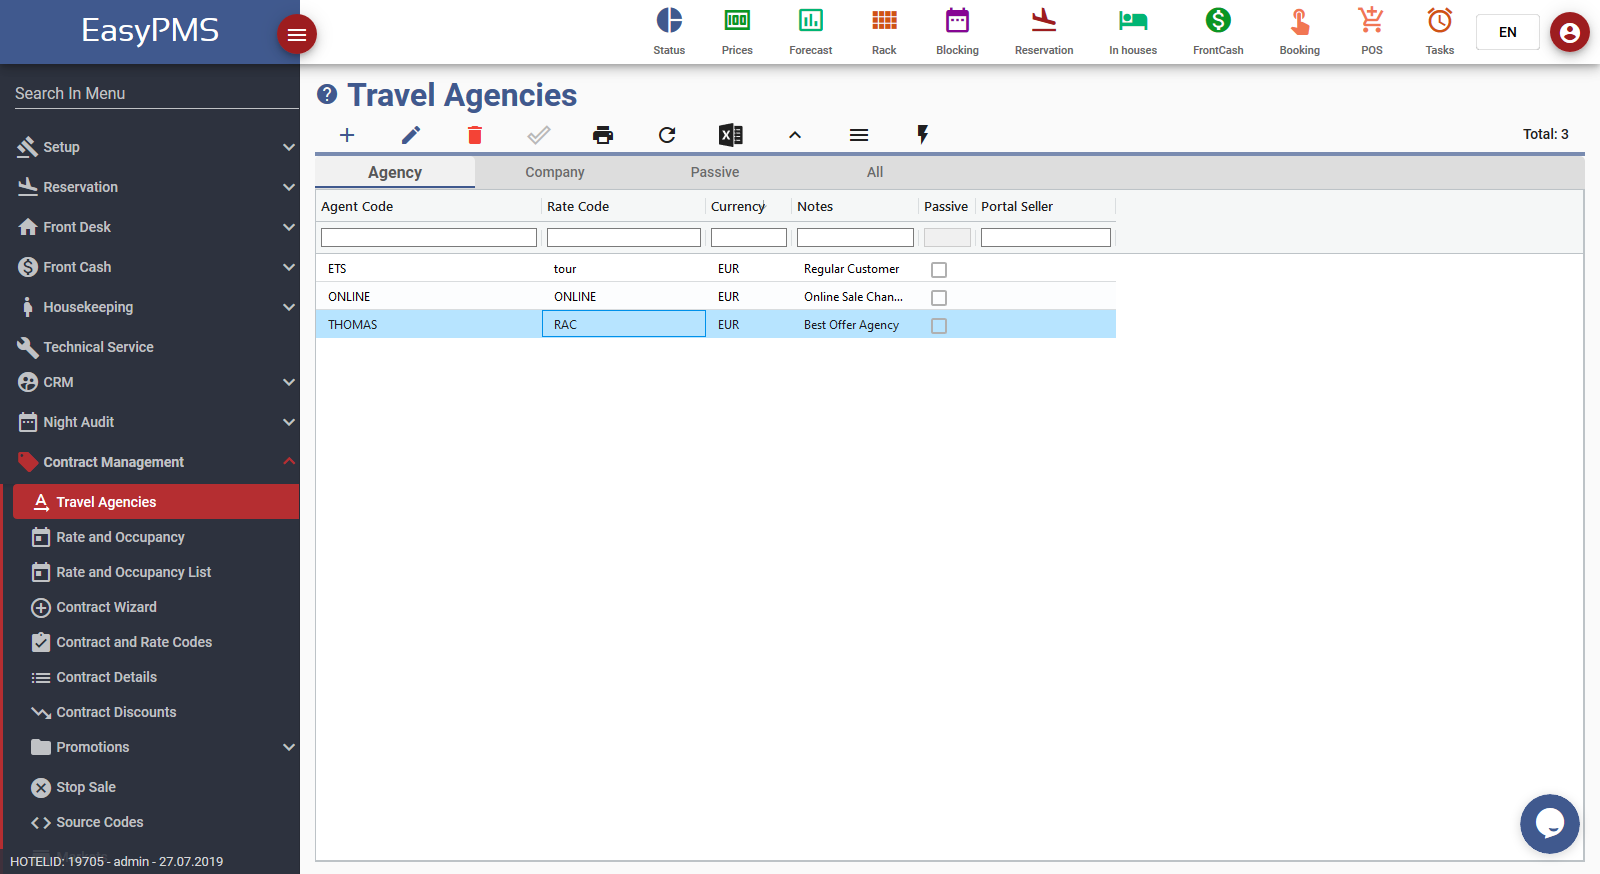 easypms travel agencies contract management